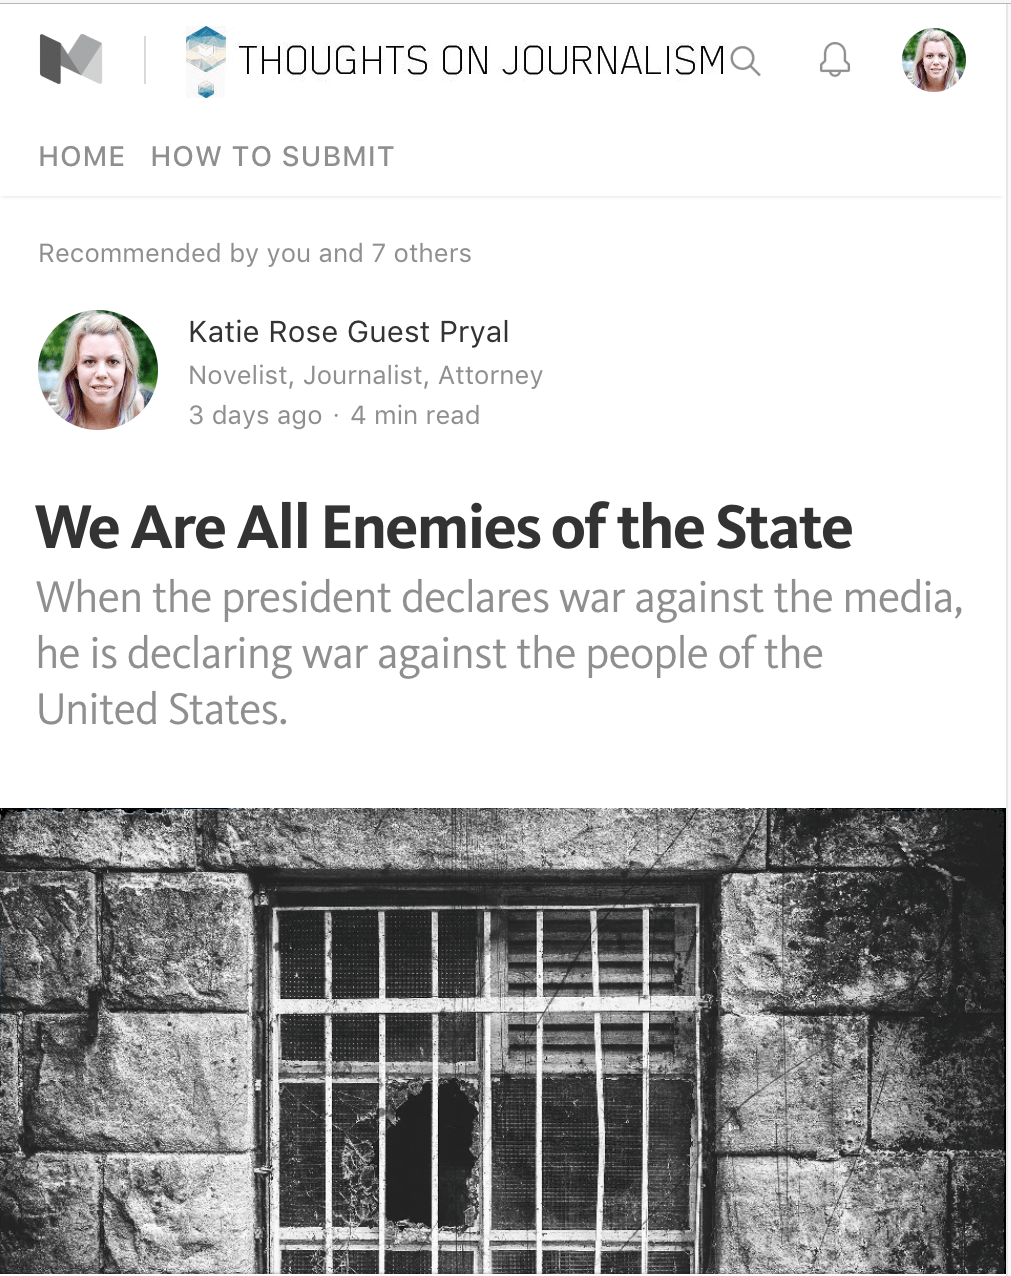 Thoughts on Journalism: We Are All Enemies of the State